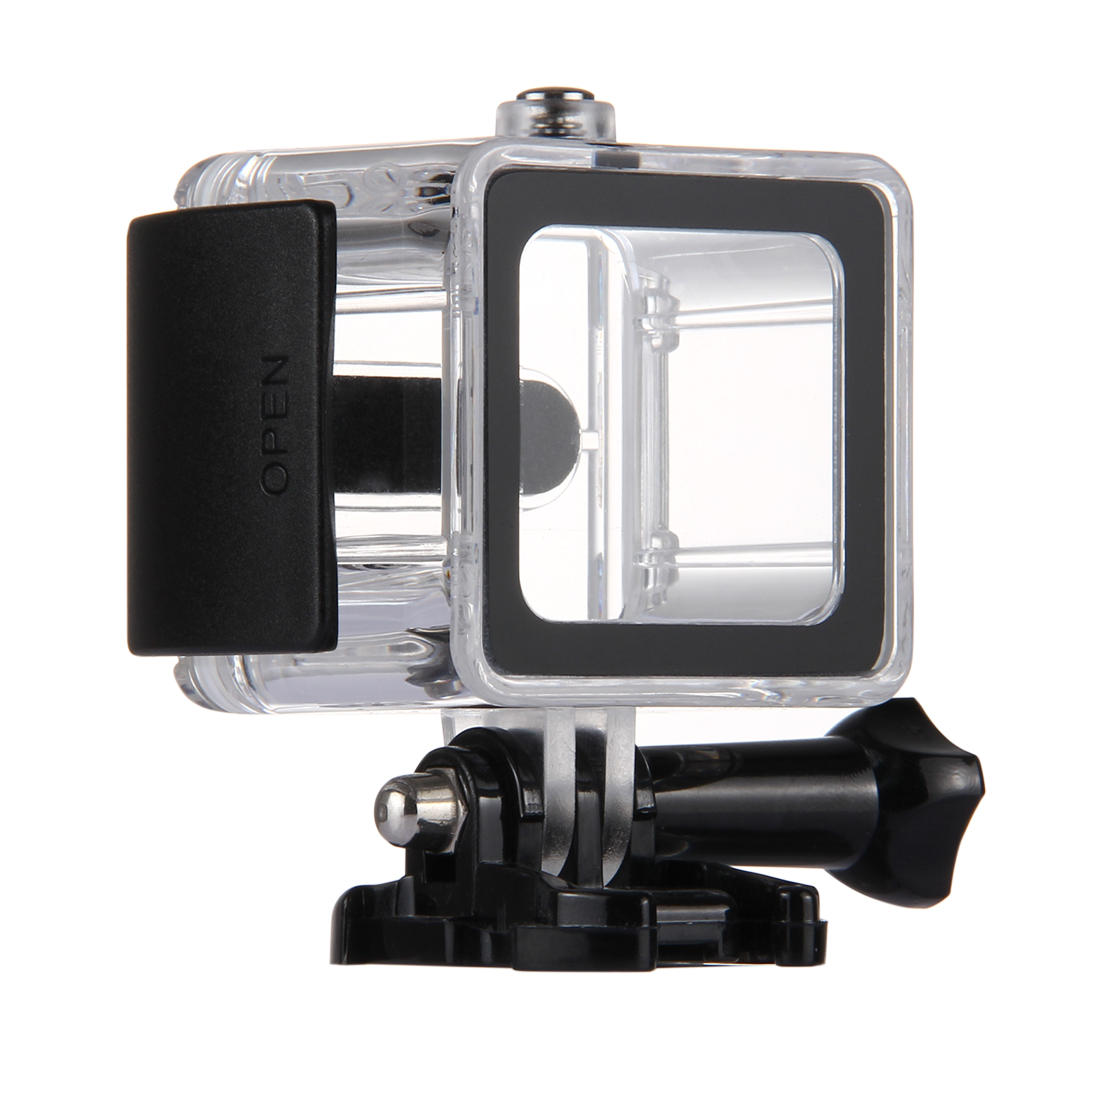 PULUZ PU218 Shockproof Protective Diving Shell Waterproof Camera Housing Diving Case Cover For GoPro HERO 4 HERO 5 Session